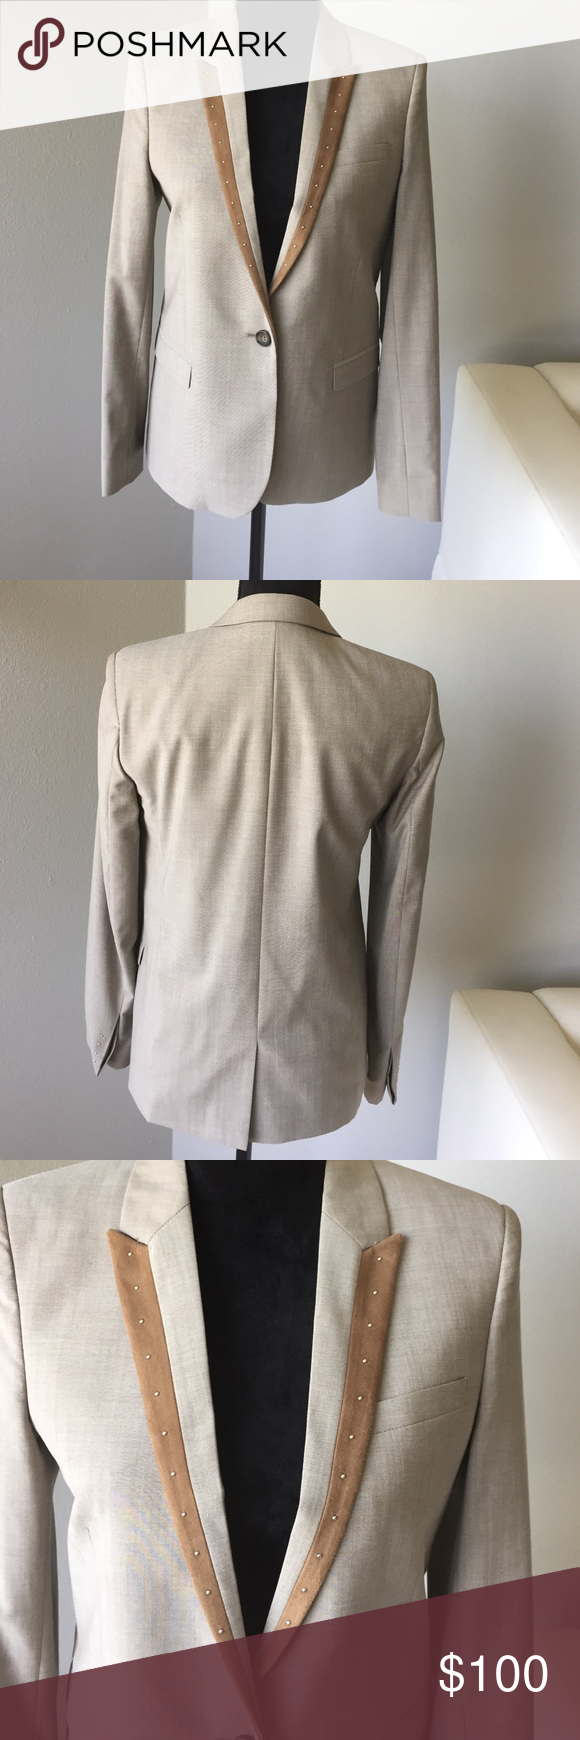 Blazer by The Kooples Beige blazer. Brown suede trim with studs. Studs on sleeve. Beautiful fit. Worn once only. The Kooples Jackets & Coats Blazers